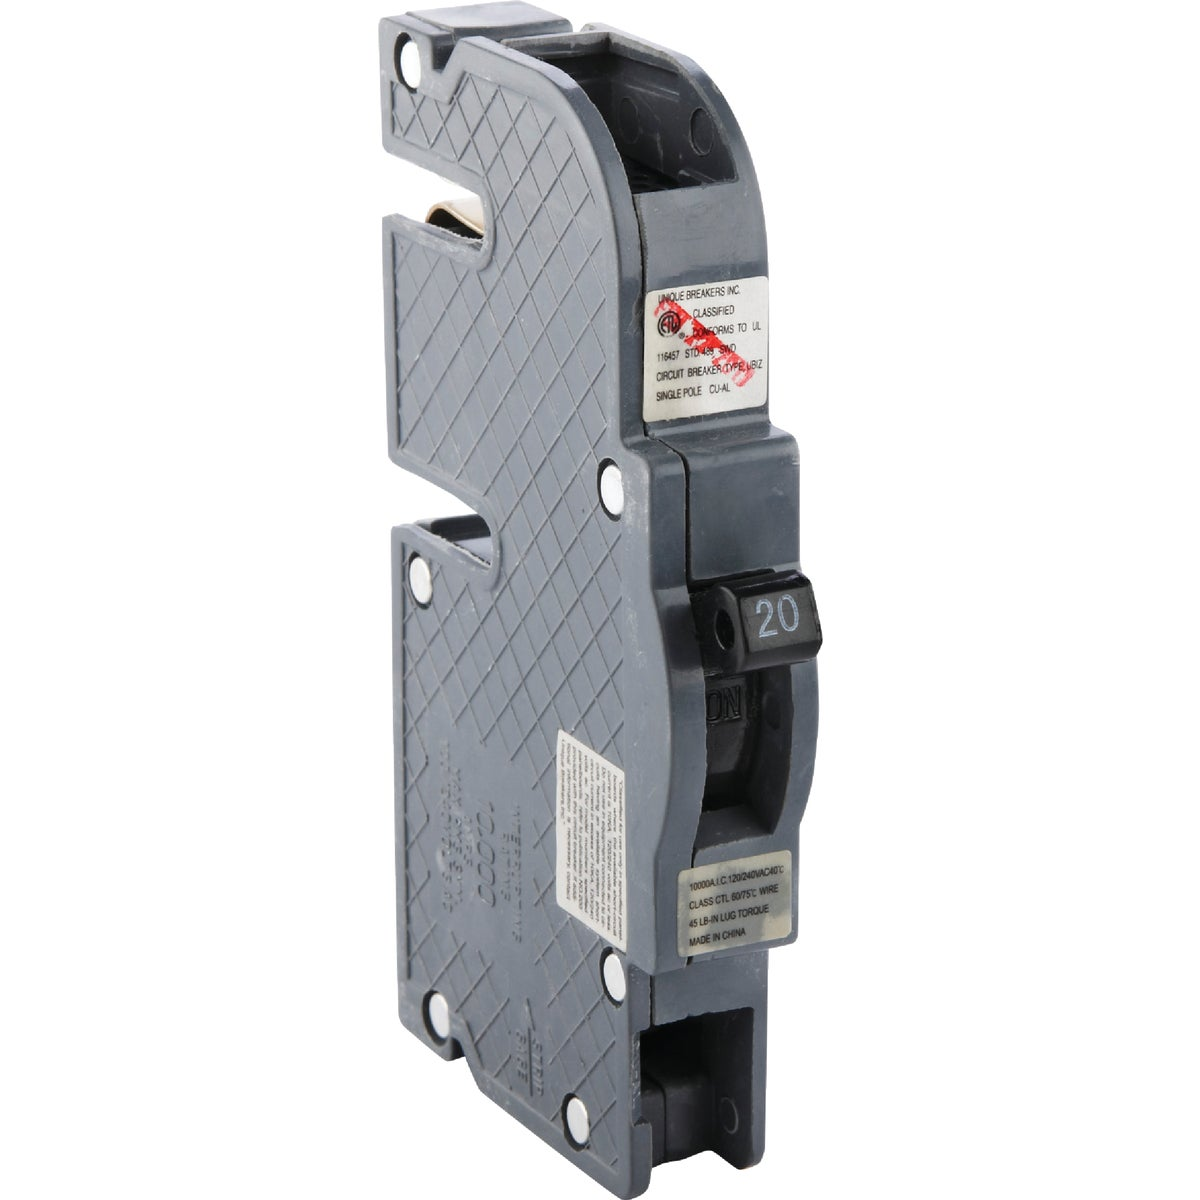 20A SP CIRCUIT BREAKER - UBIZ20 by Connecticut Electric